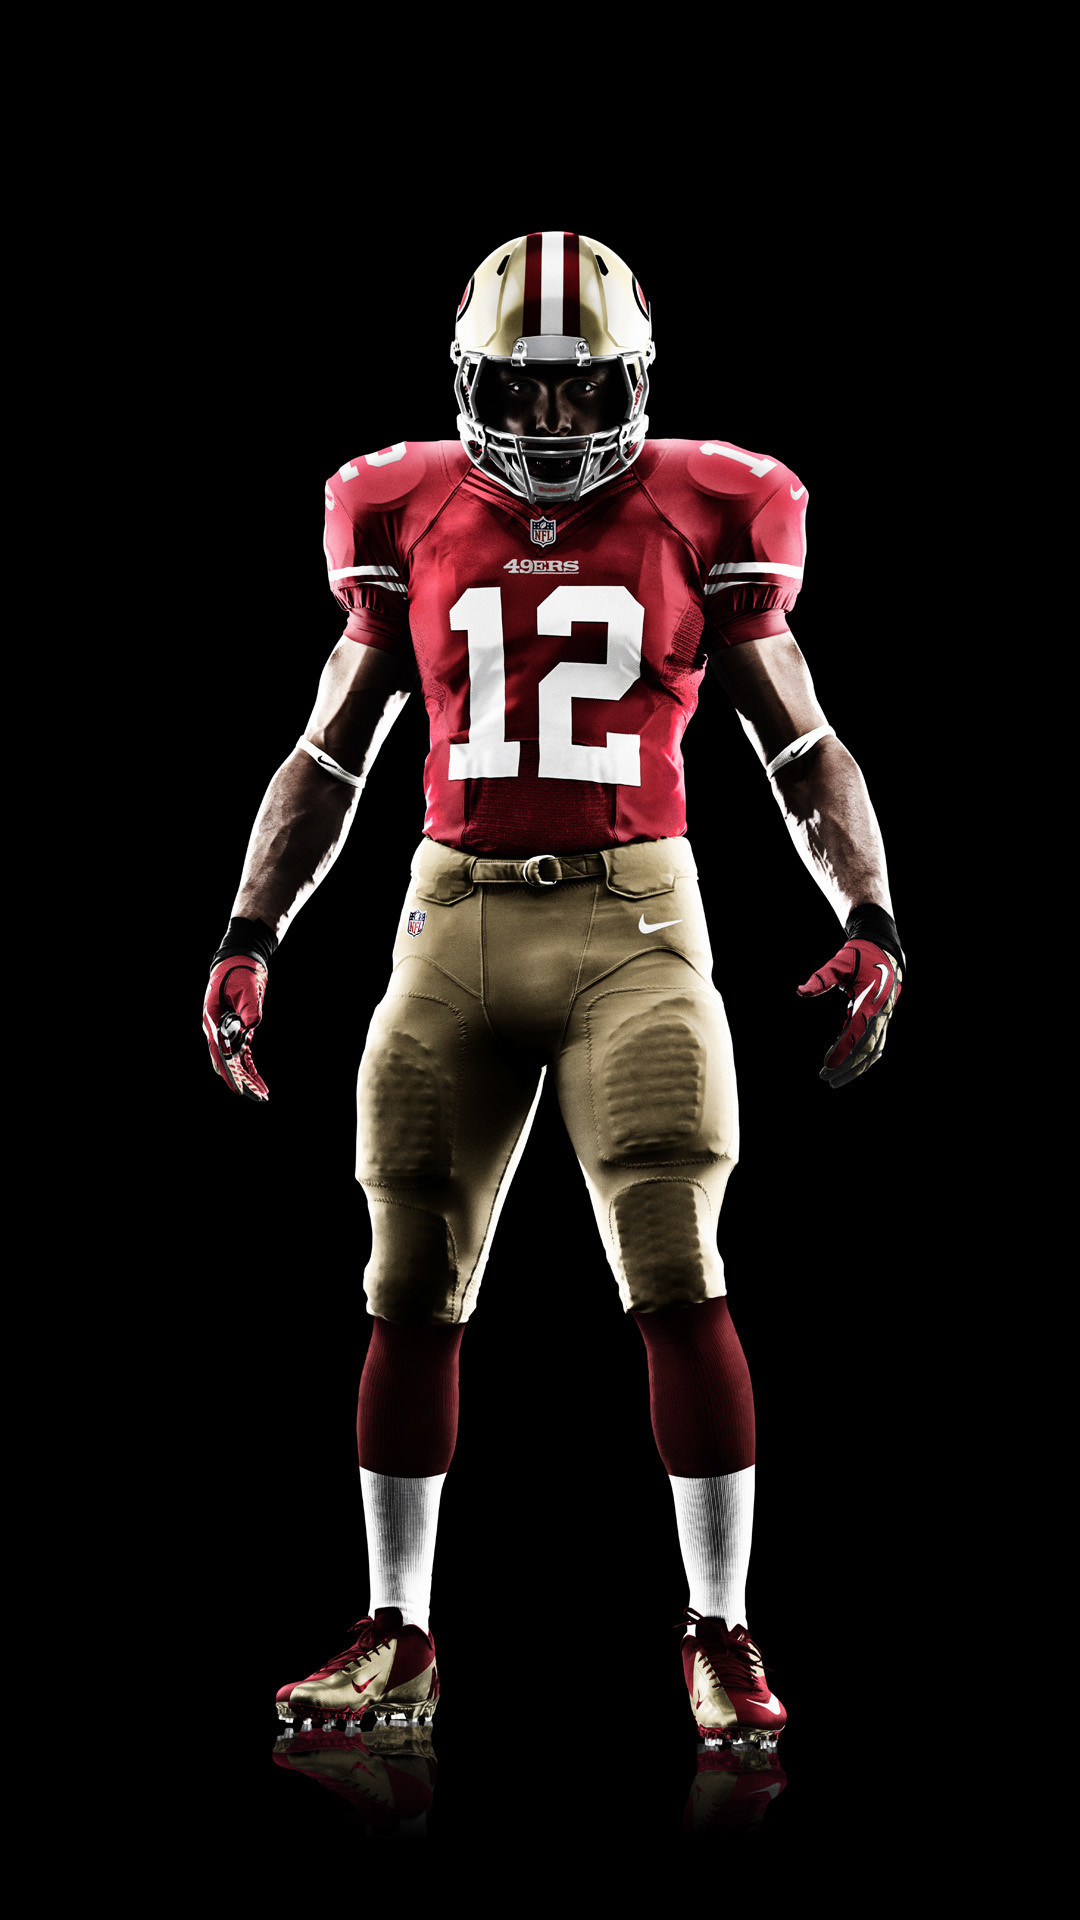 1080x1920 2560x1600 Beautiful-49ers-HD-Wallpapers